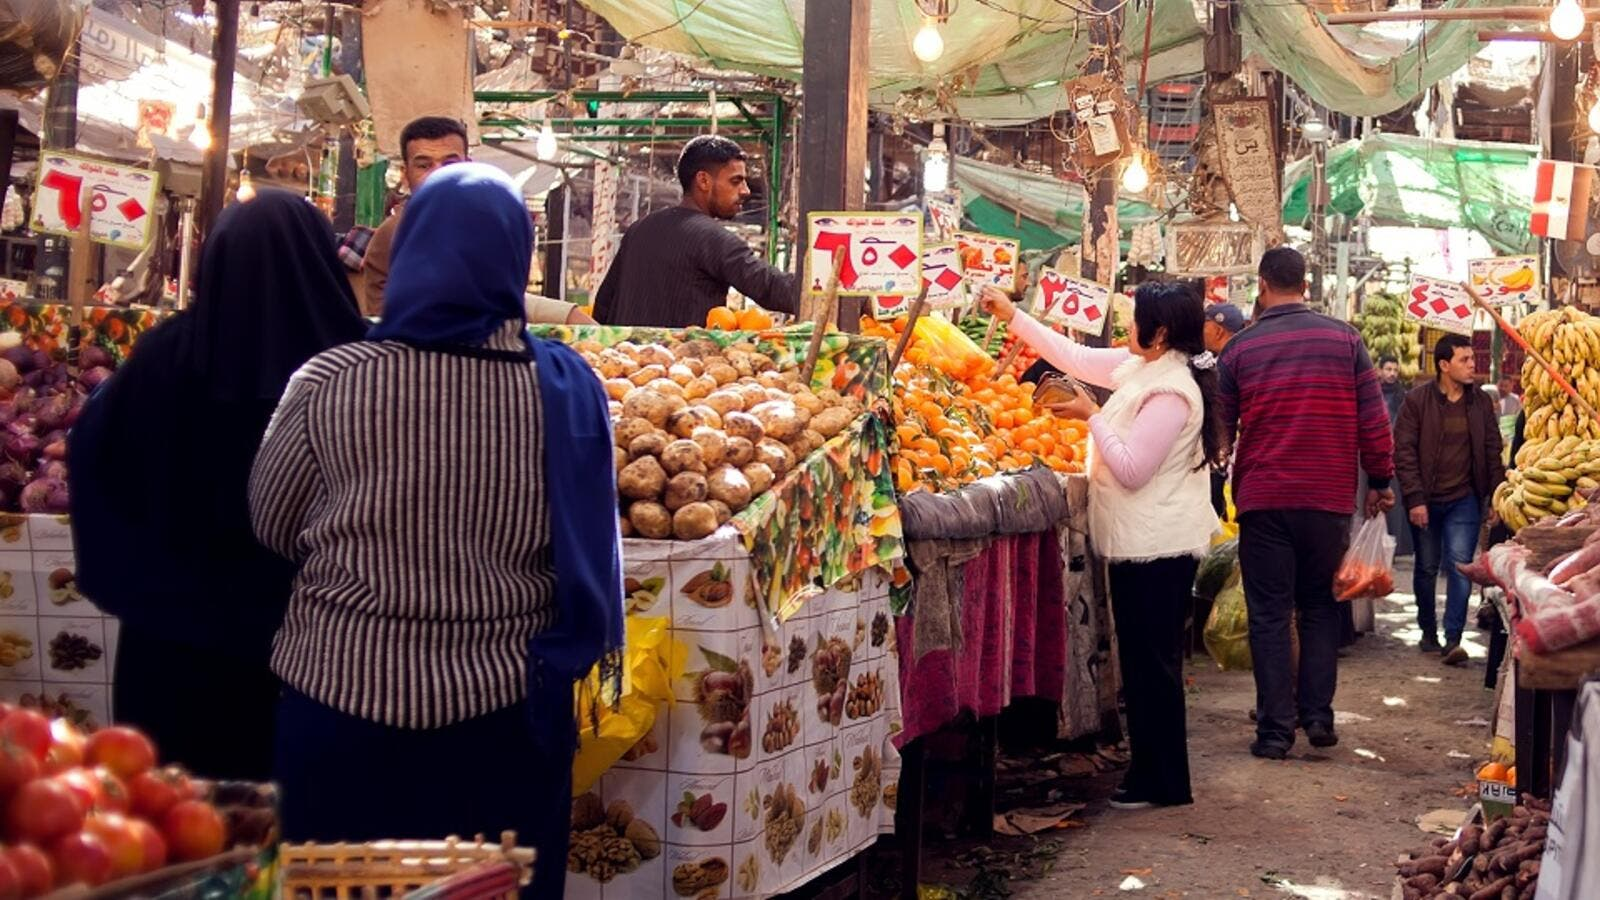 Egypt Will Lower Prices of Subsidized Food Staples Starting December